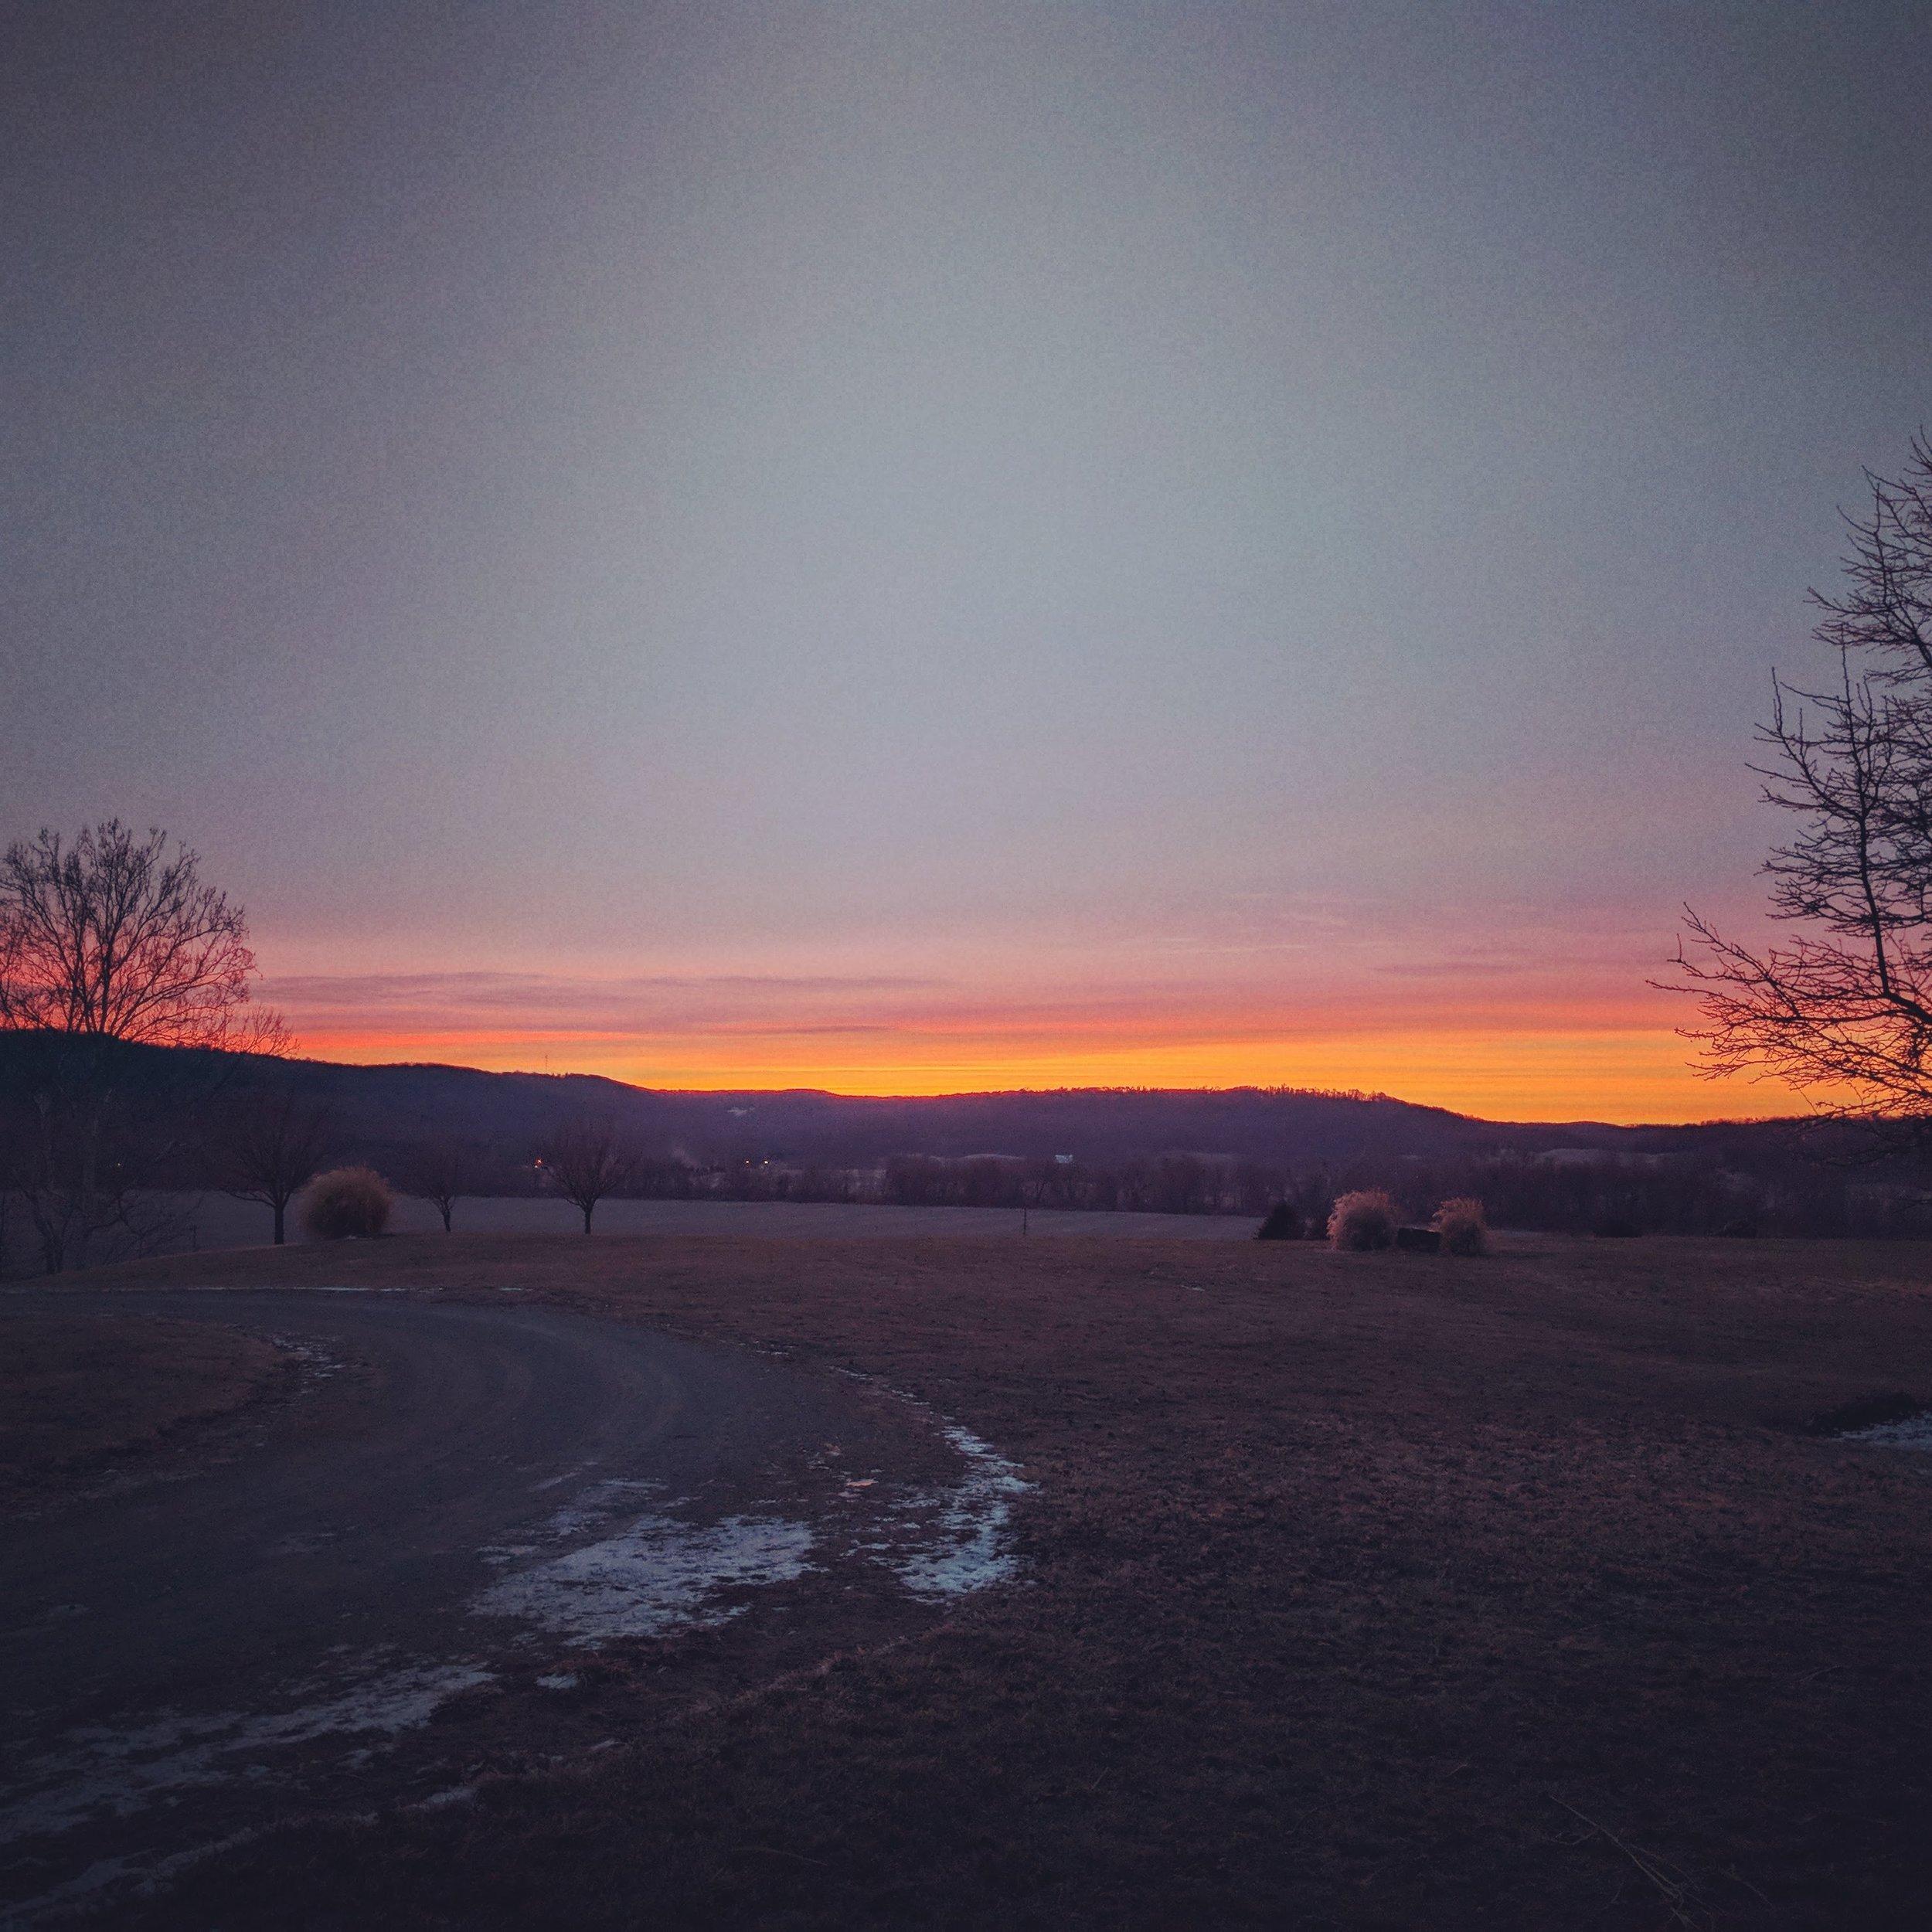 The sunrise from the morning she died.